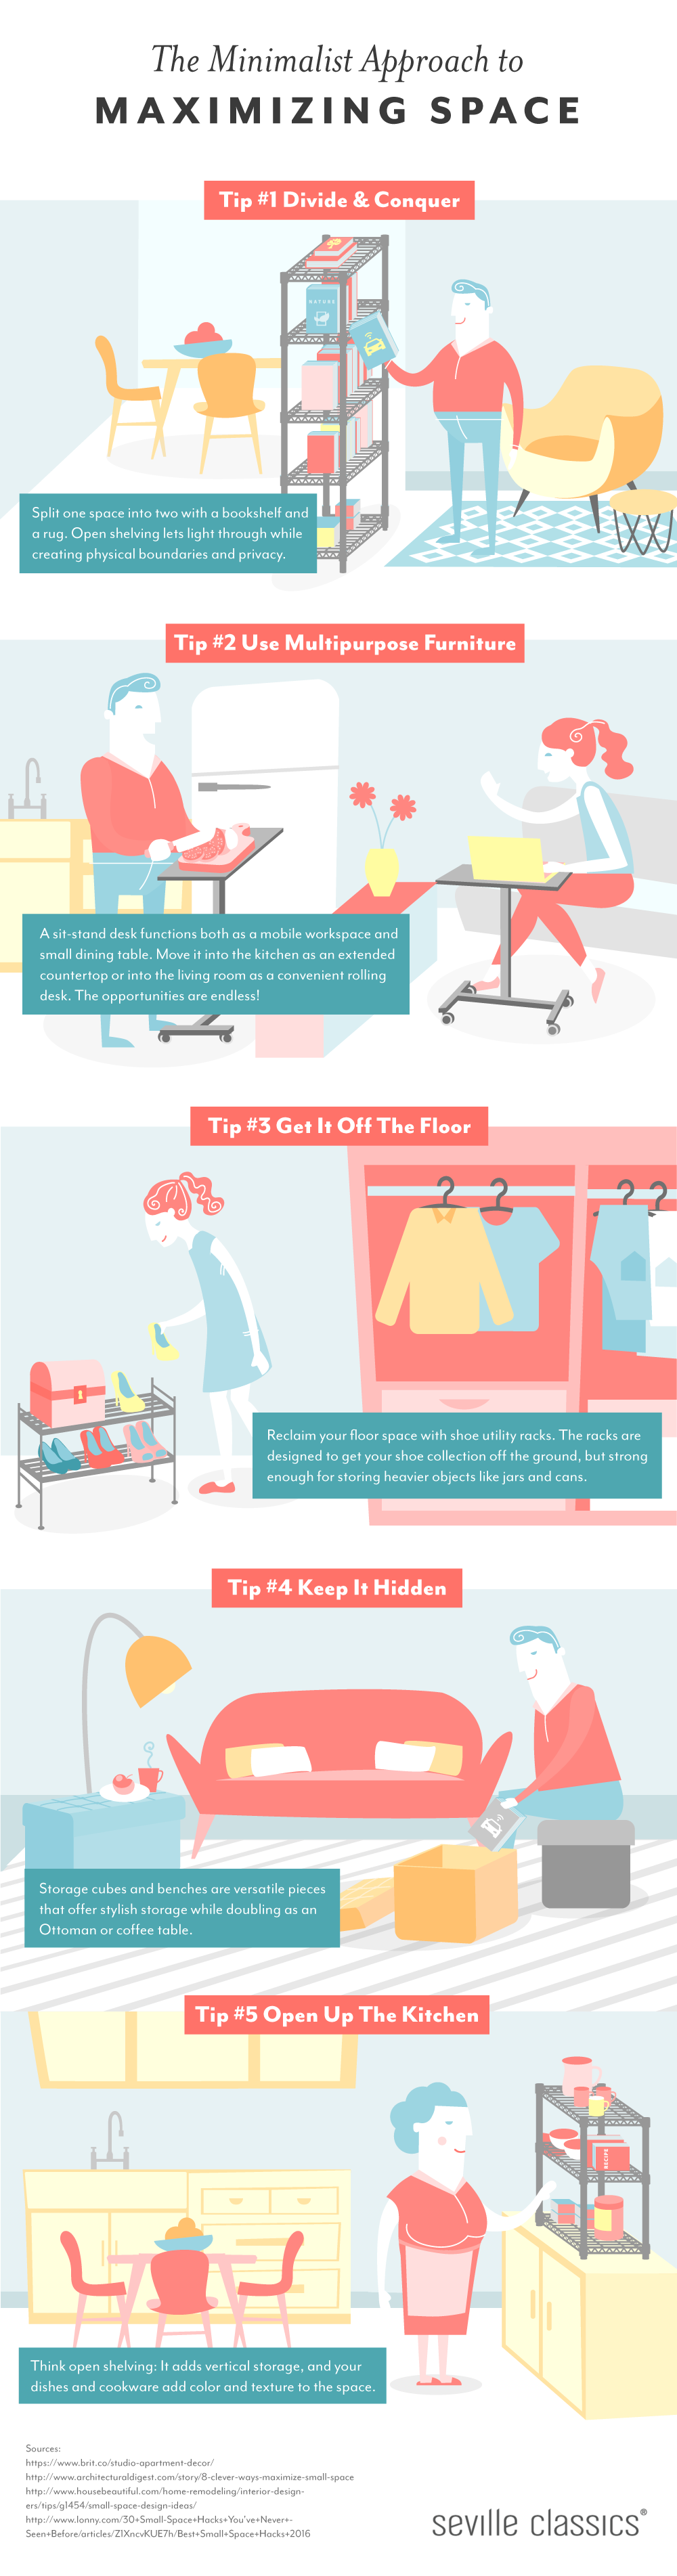 How to Maximize Space by Minimizing Storage Area! - Infographic